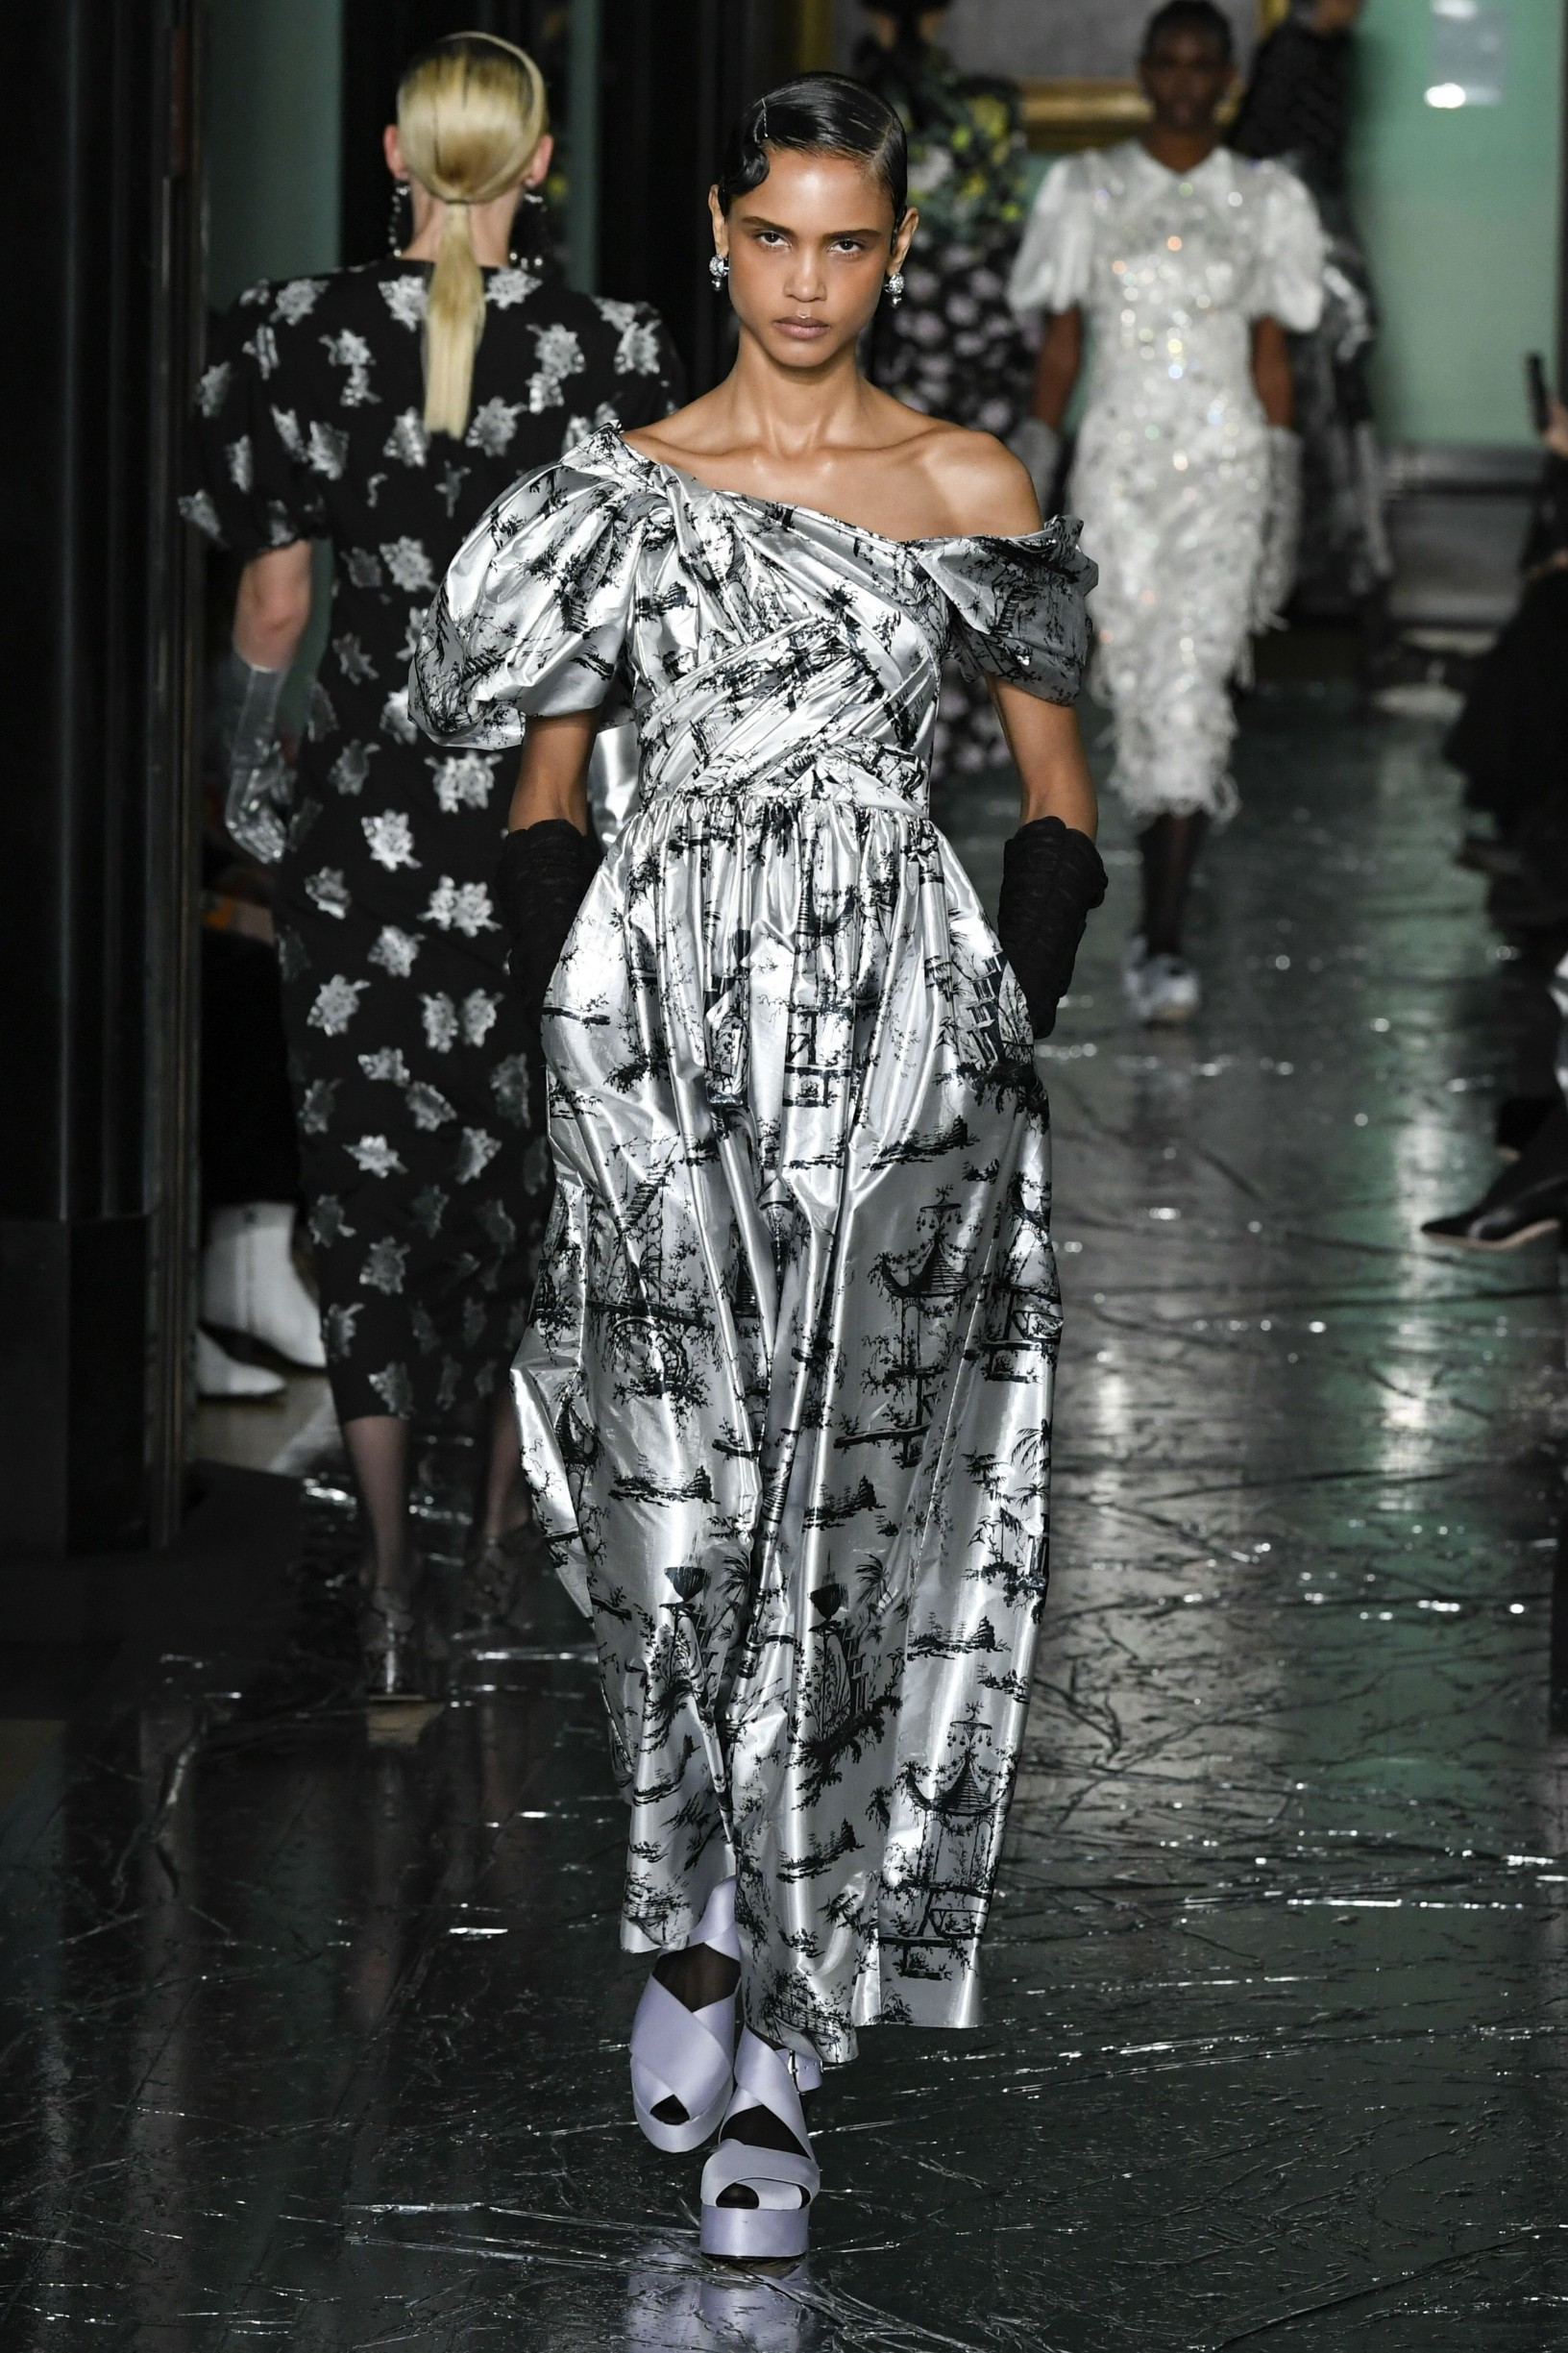 Model wears an outfit as part of the women ready-to-wear autumn winter 2020 2021, women fashion week, London, UK, from the house of Erdem  //Z-PIXEL-FORMULA_C_057/2002171840/Credit:PIXELFORMULA/SIPA/2002171841, Image: 499127280, License: Rights-managed, Restrictions: , Model Release: no, Credit line: PIXELFORMULA / Sipa Press / Profimedia